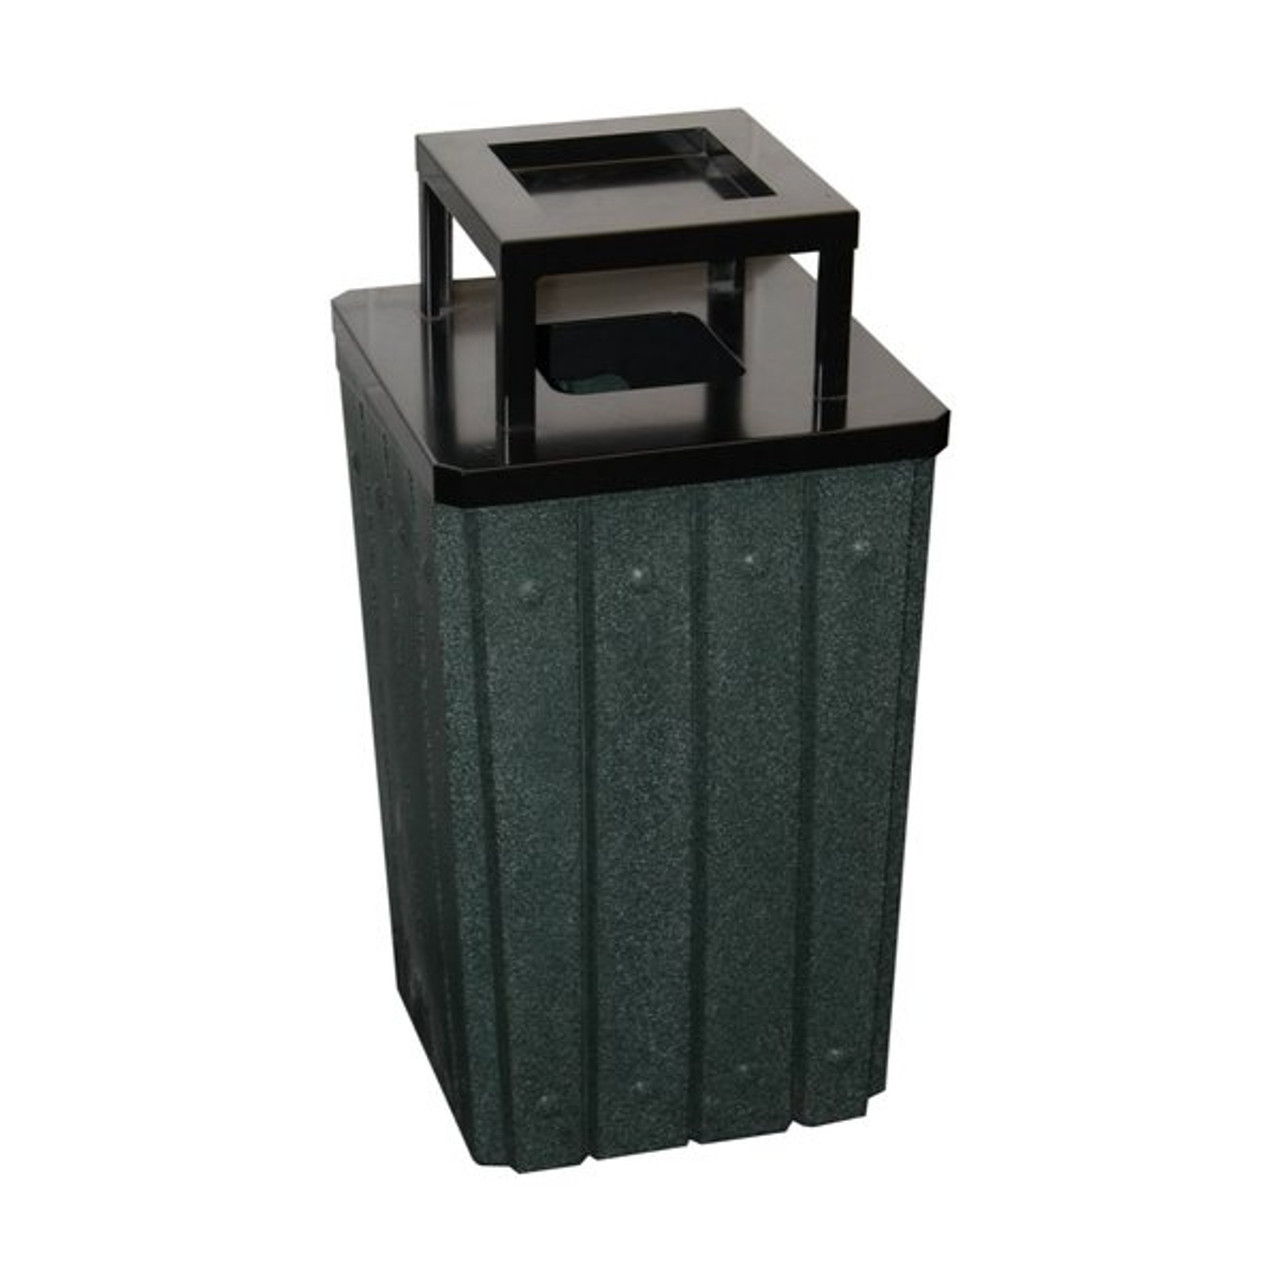 Kolor Can Signature 32 Gallon Heavy Duty Trash Receptacle with Ashtray Lid GREEN GRANITE